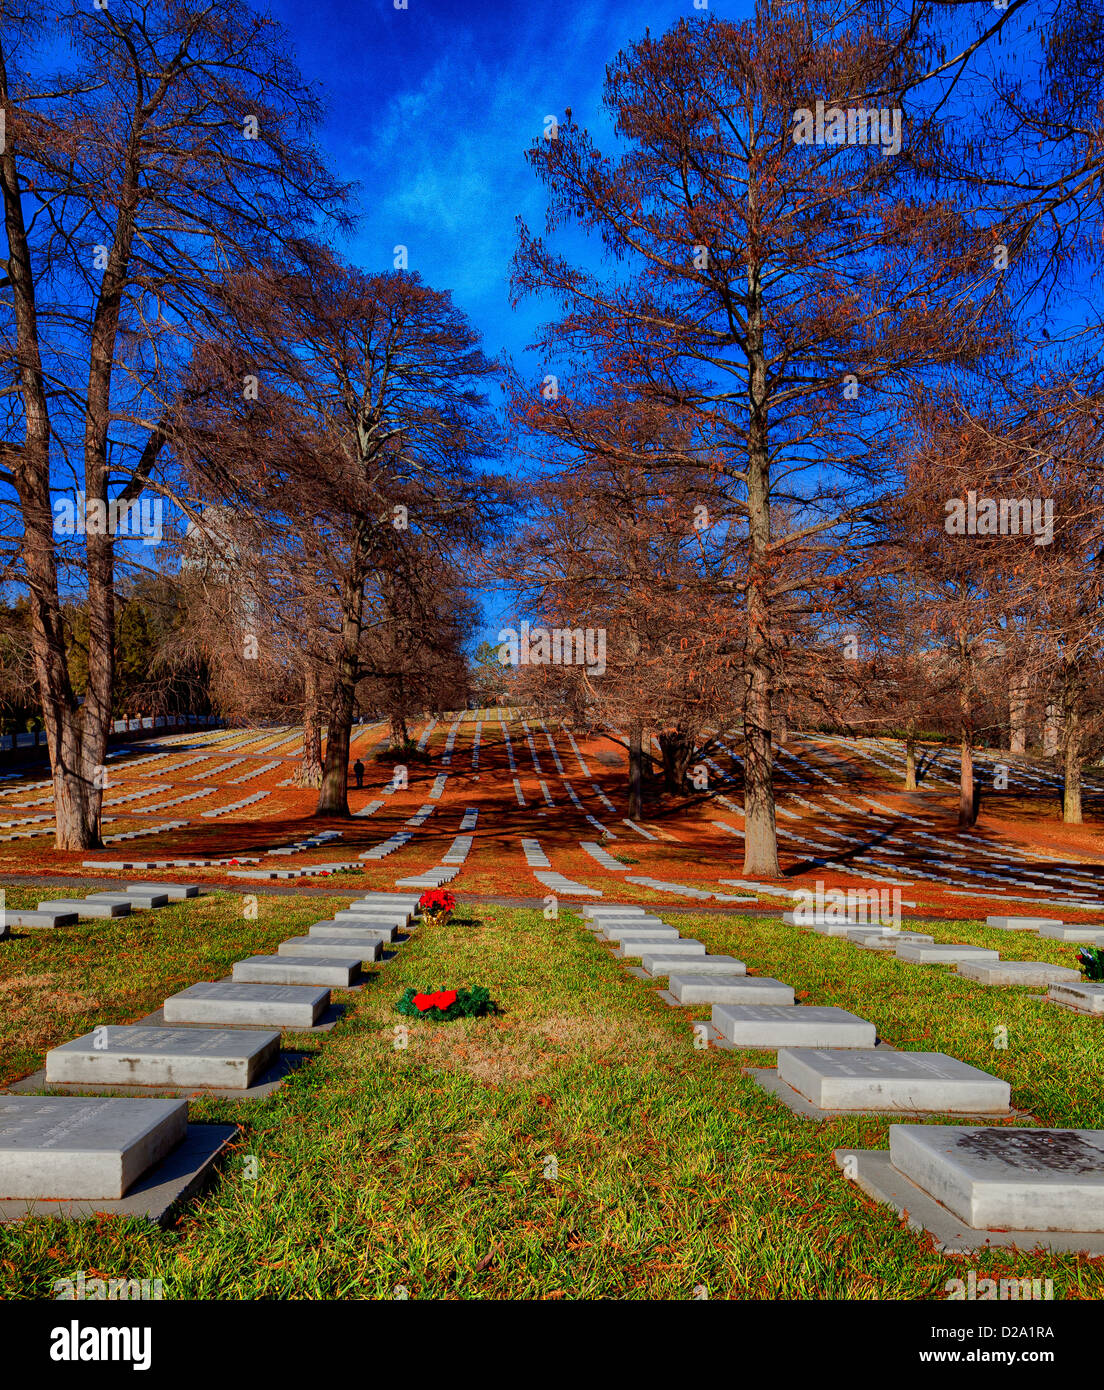 Rows of tombstones in a cemetery. - Stock Image